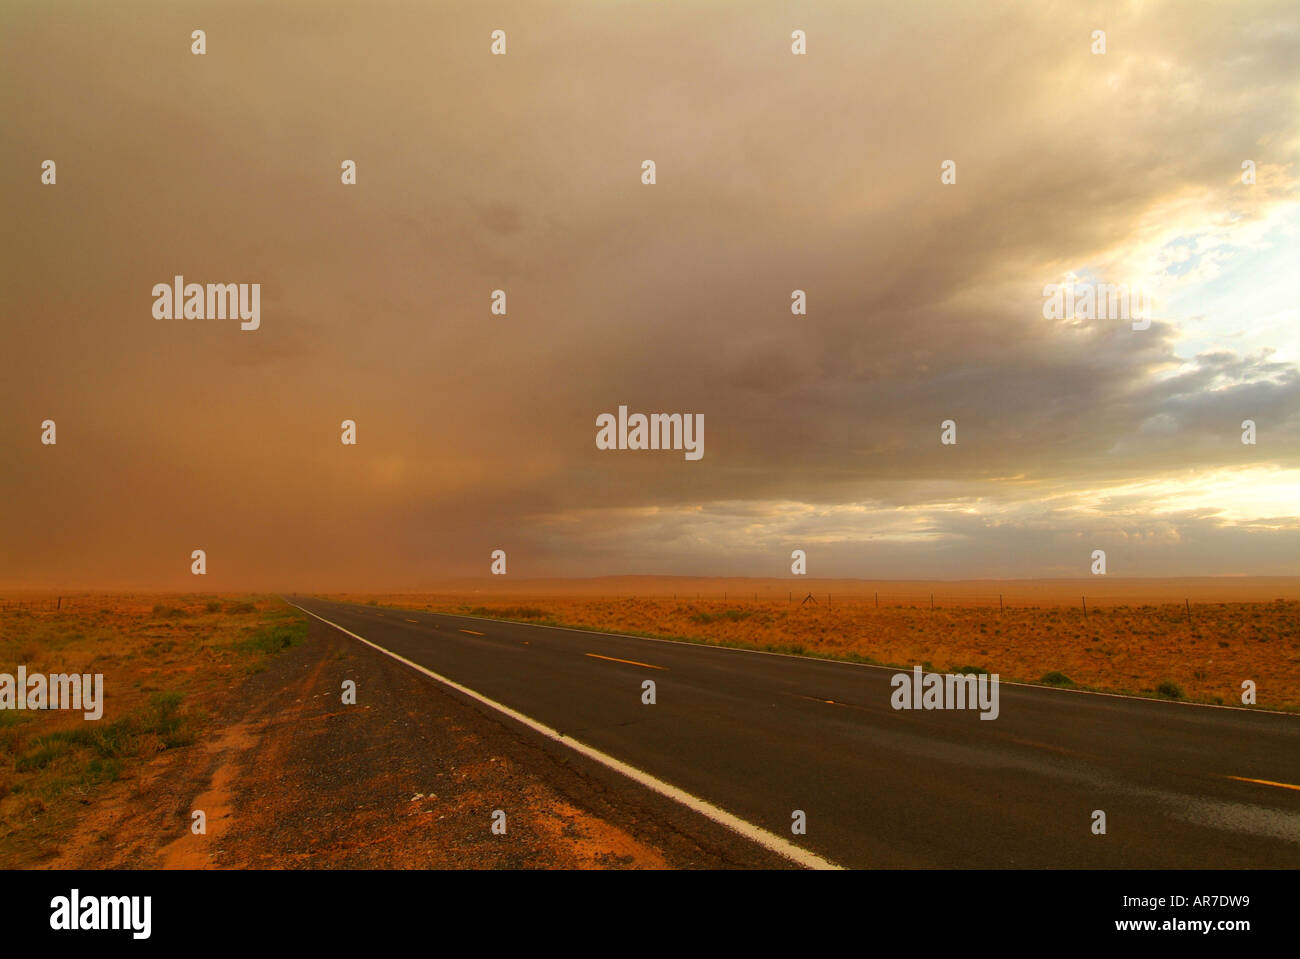 at-sunset-high-winds-pick-up-dust-and-sand-to-create-a-storm-of-particulate-AR7DW9.jpg